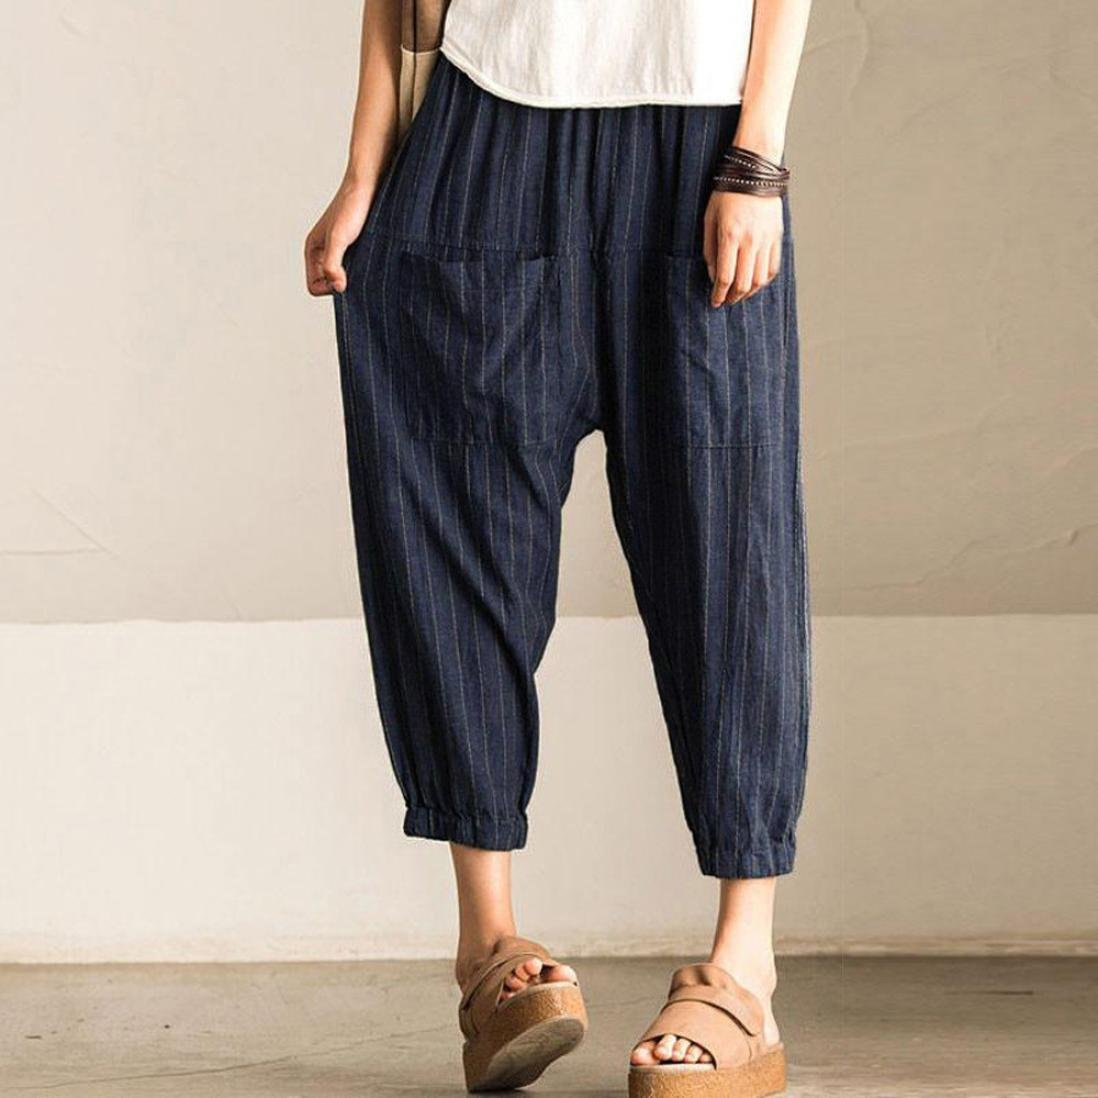 Womens Summer Loose Fitting High-waisted Spatchwork  Stripes Pants With Pockets  Womans Casual Pants  Baggy Pants  Harem Pants For Women